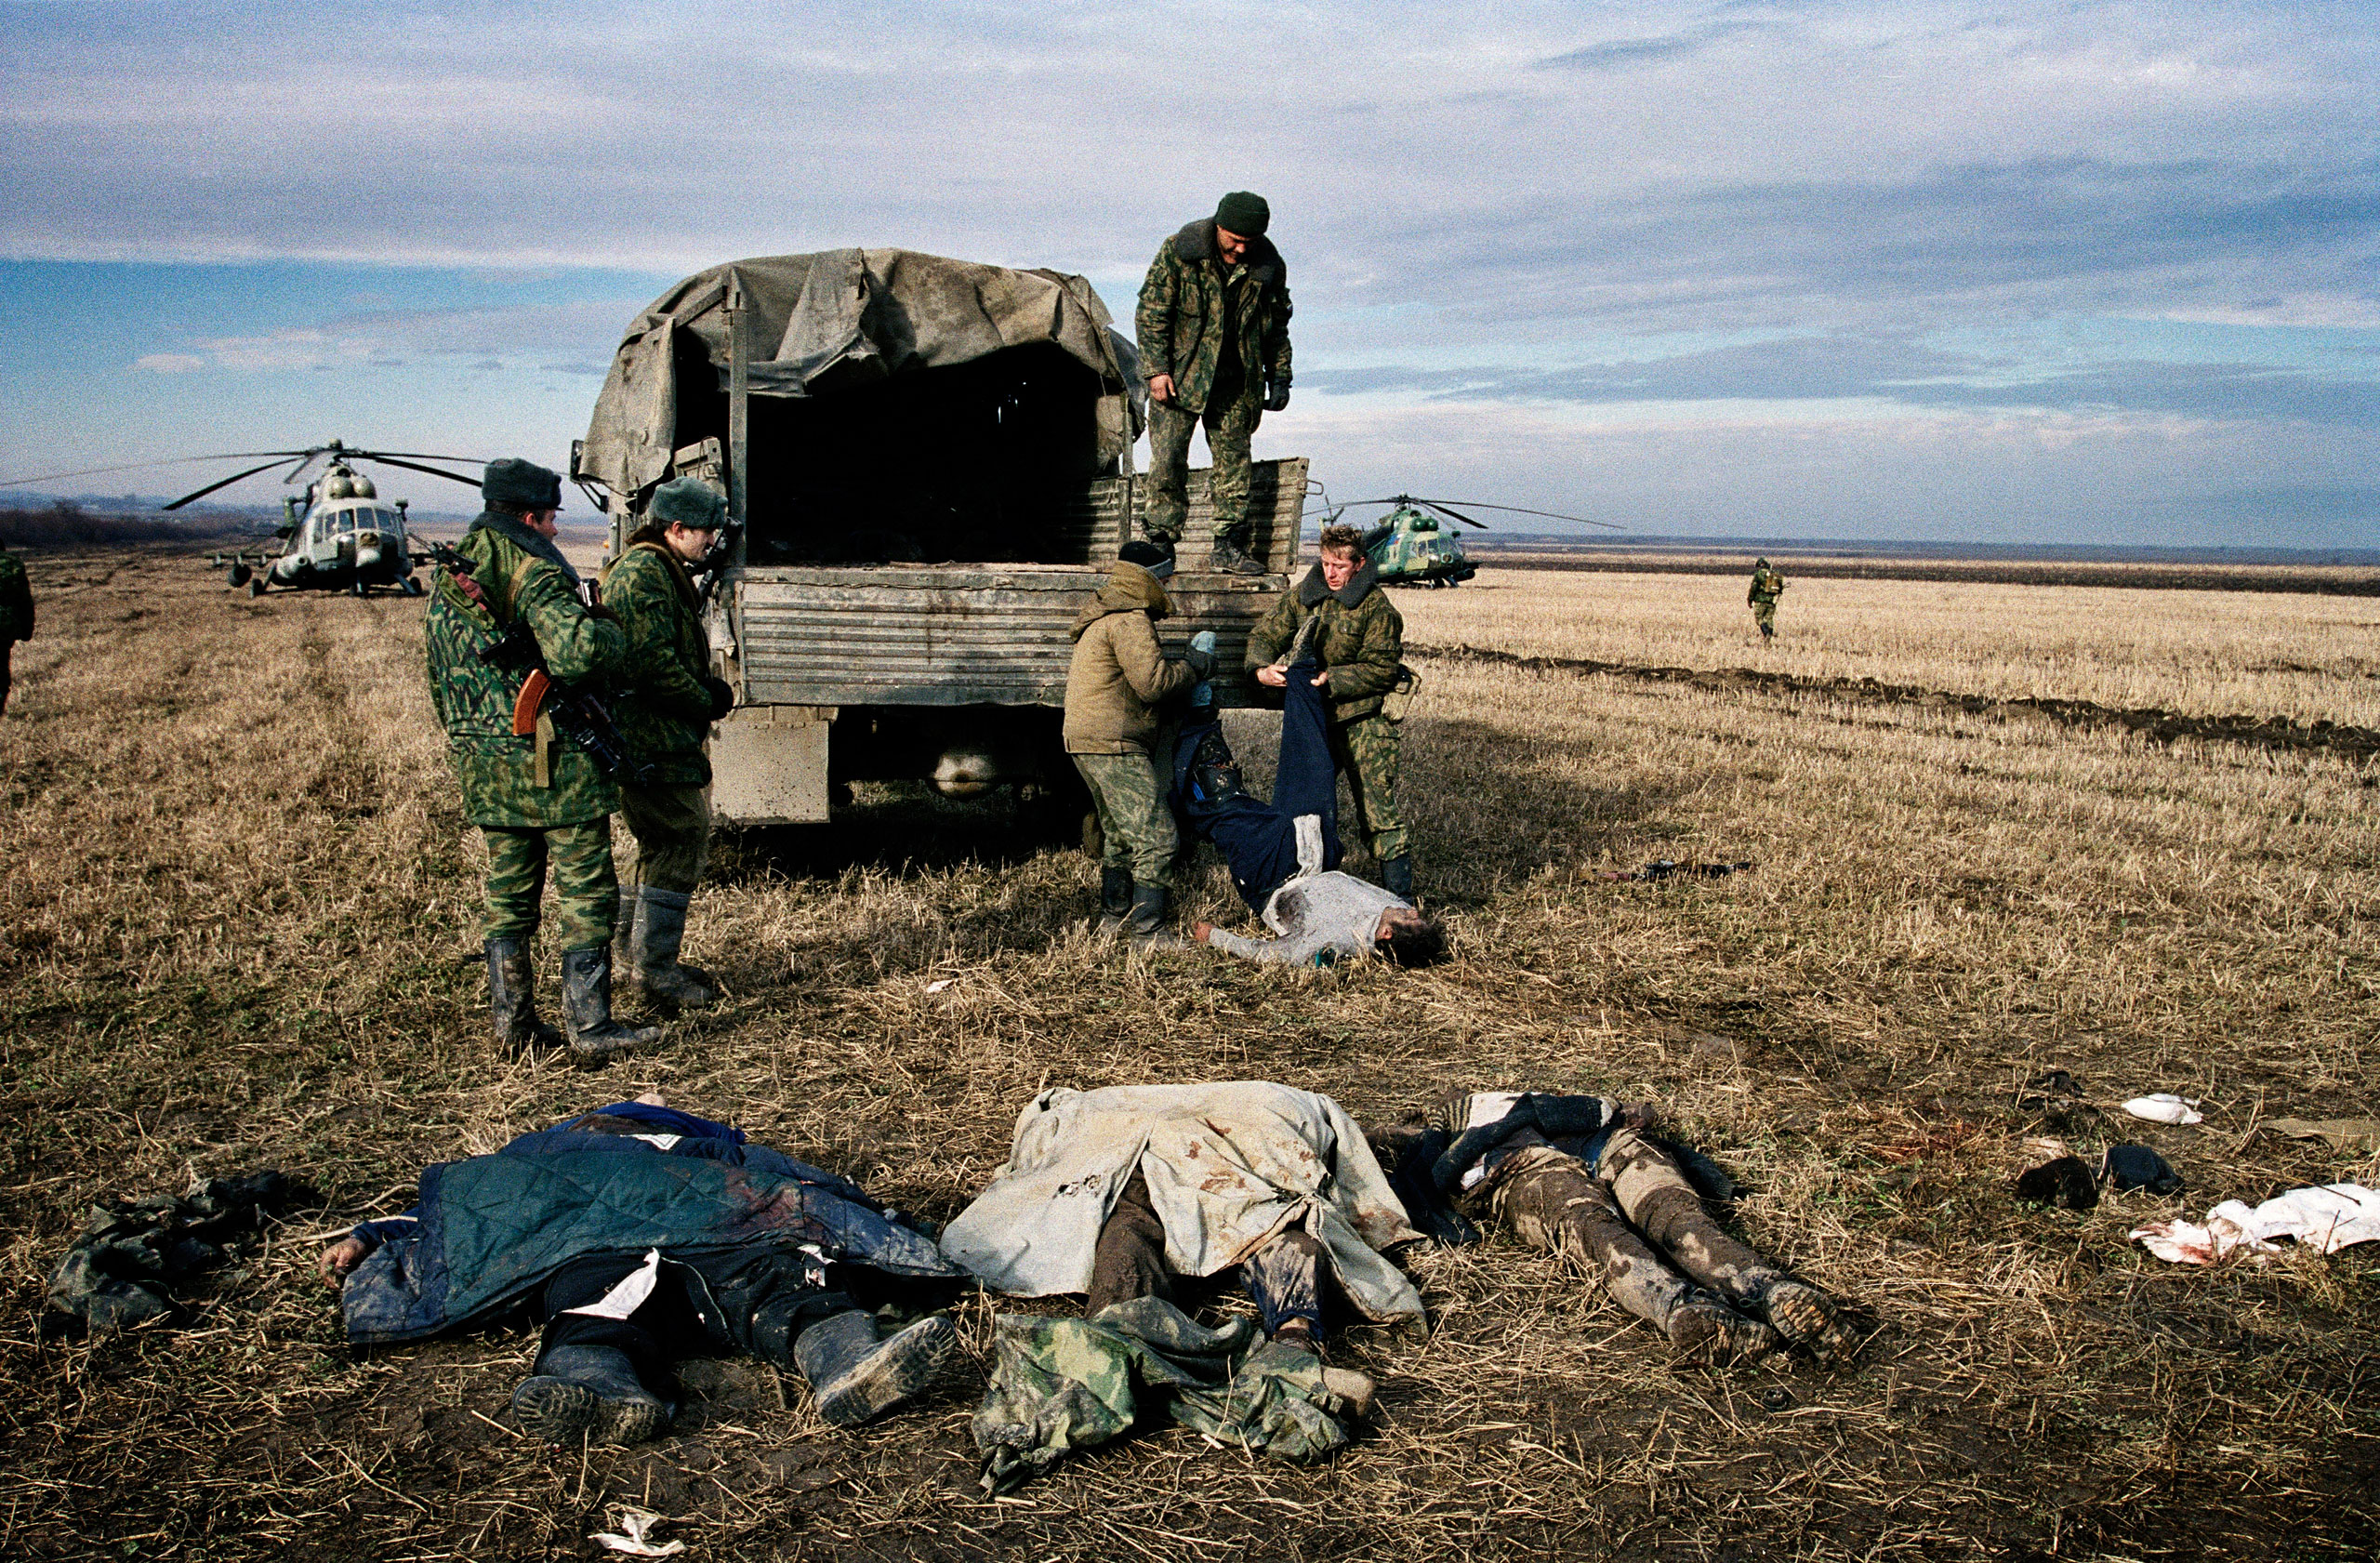 Russian troops entered Chechnya in October 1999. By the beginning of December 1999,  they had surrounded the capital of Grozny, which they stormed on Dec. 25, 1999, killing tens of thousands in the process.